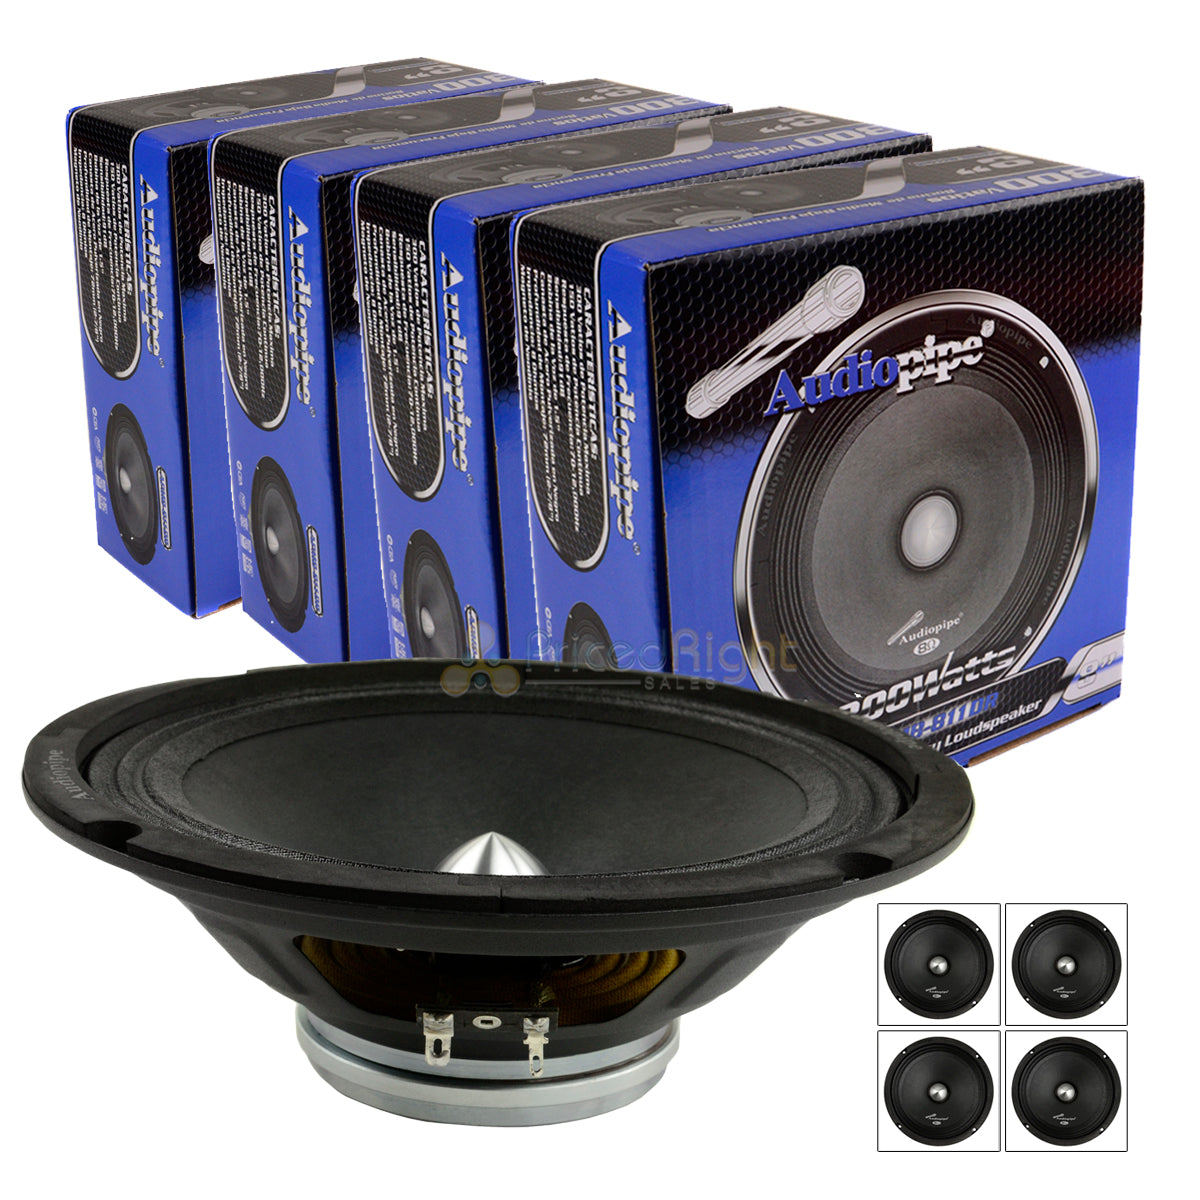 "4 Audiopipe 8"" 300W Low Mid Frequency Loudspeakers APMB-811DR Car Audio 4-Pack"